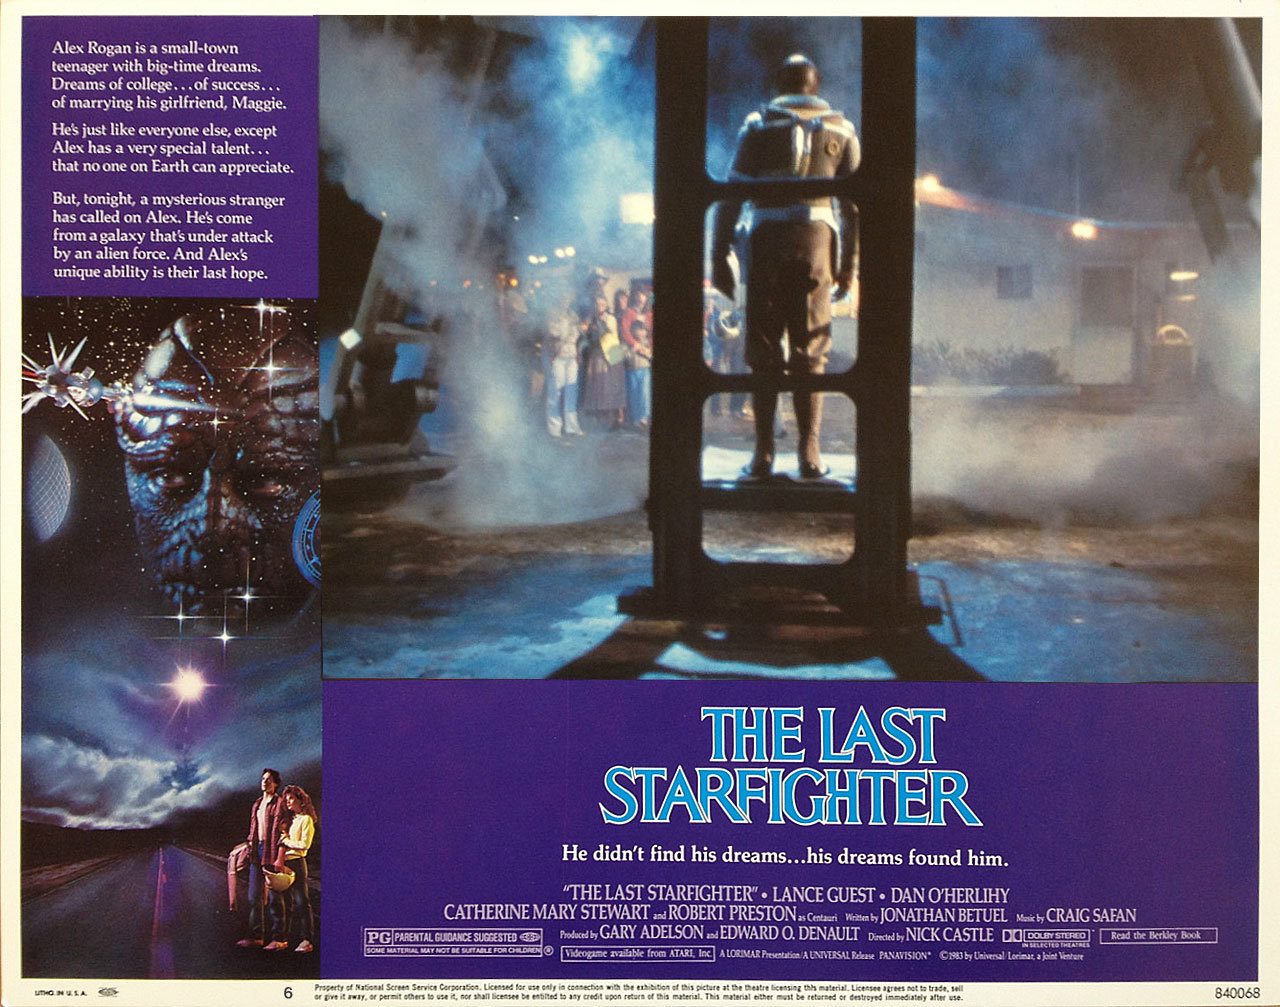 The Last Starfighter, US lobby card. 1984